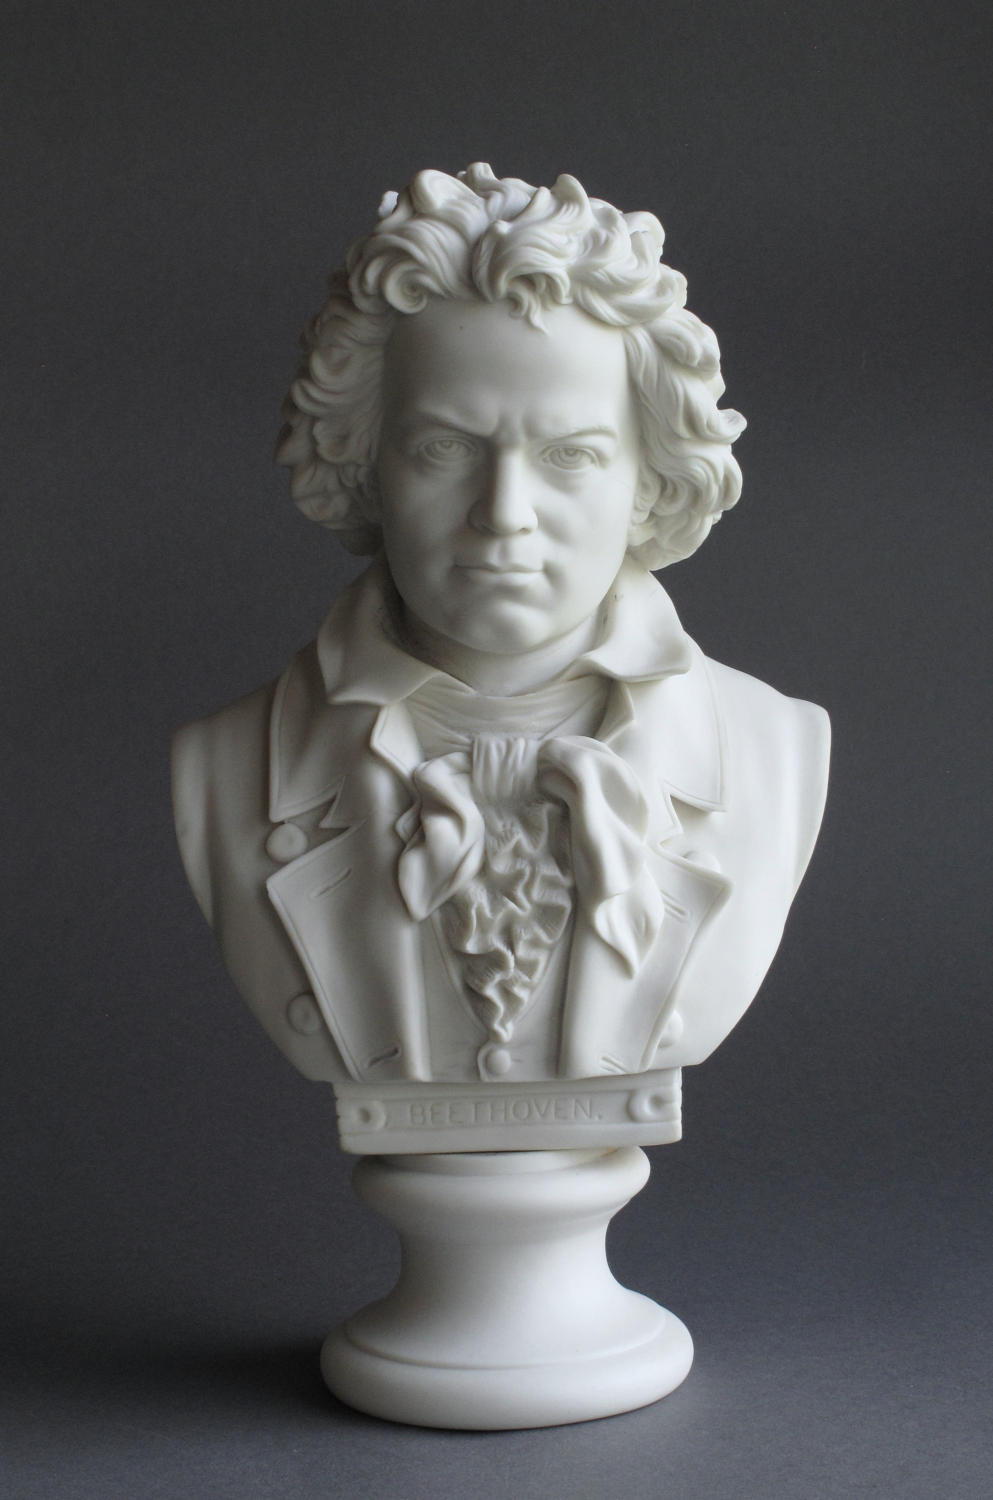 A good Parian bust of Beethoven